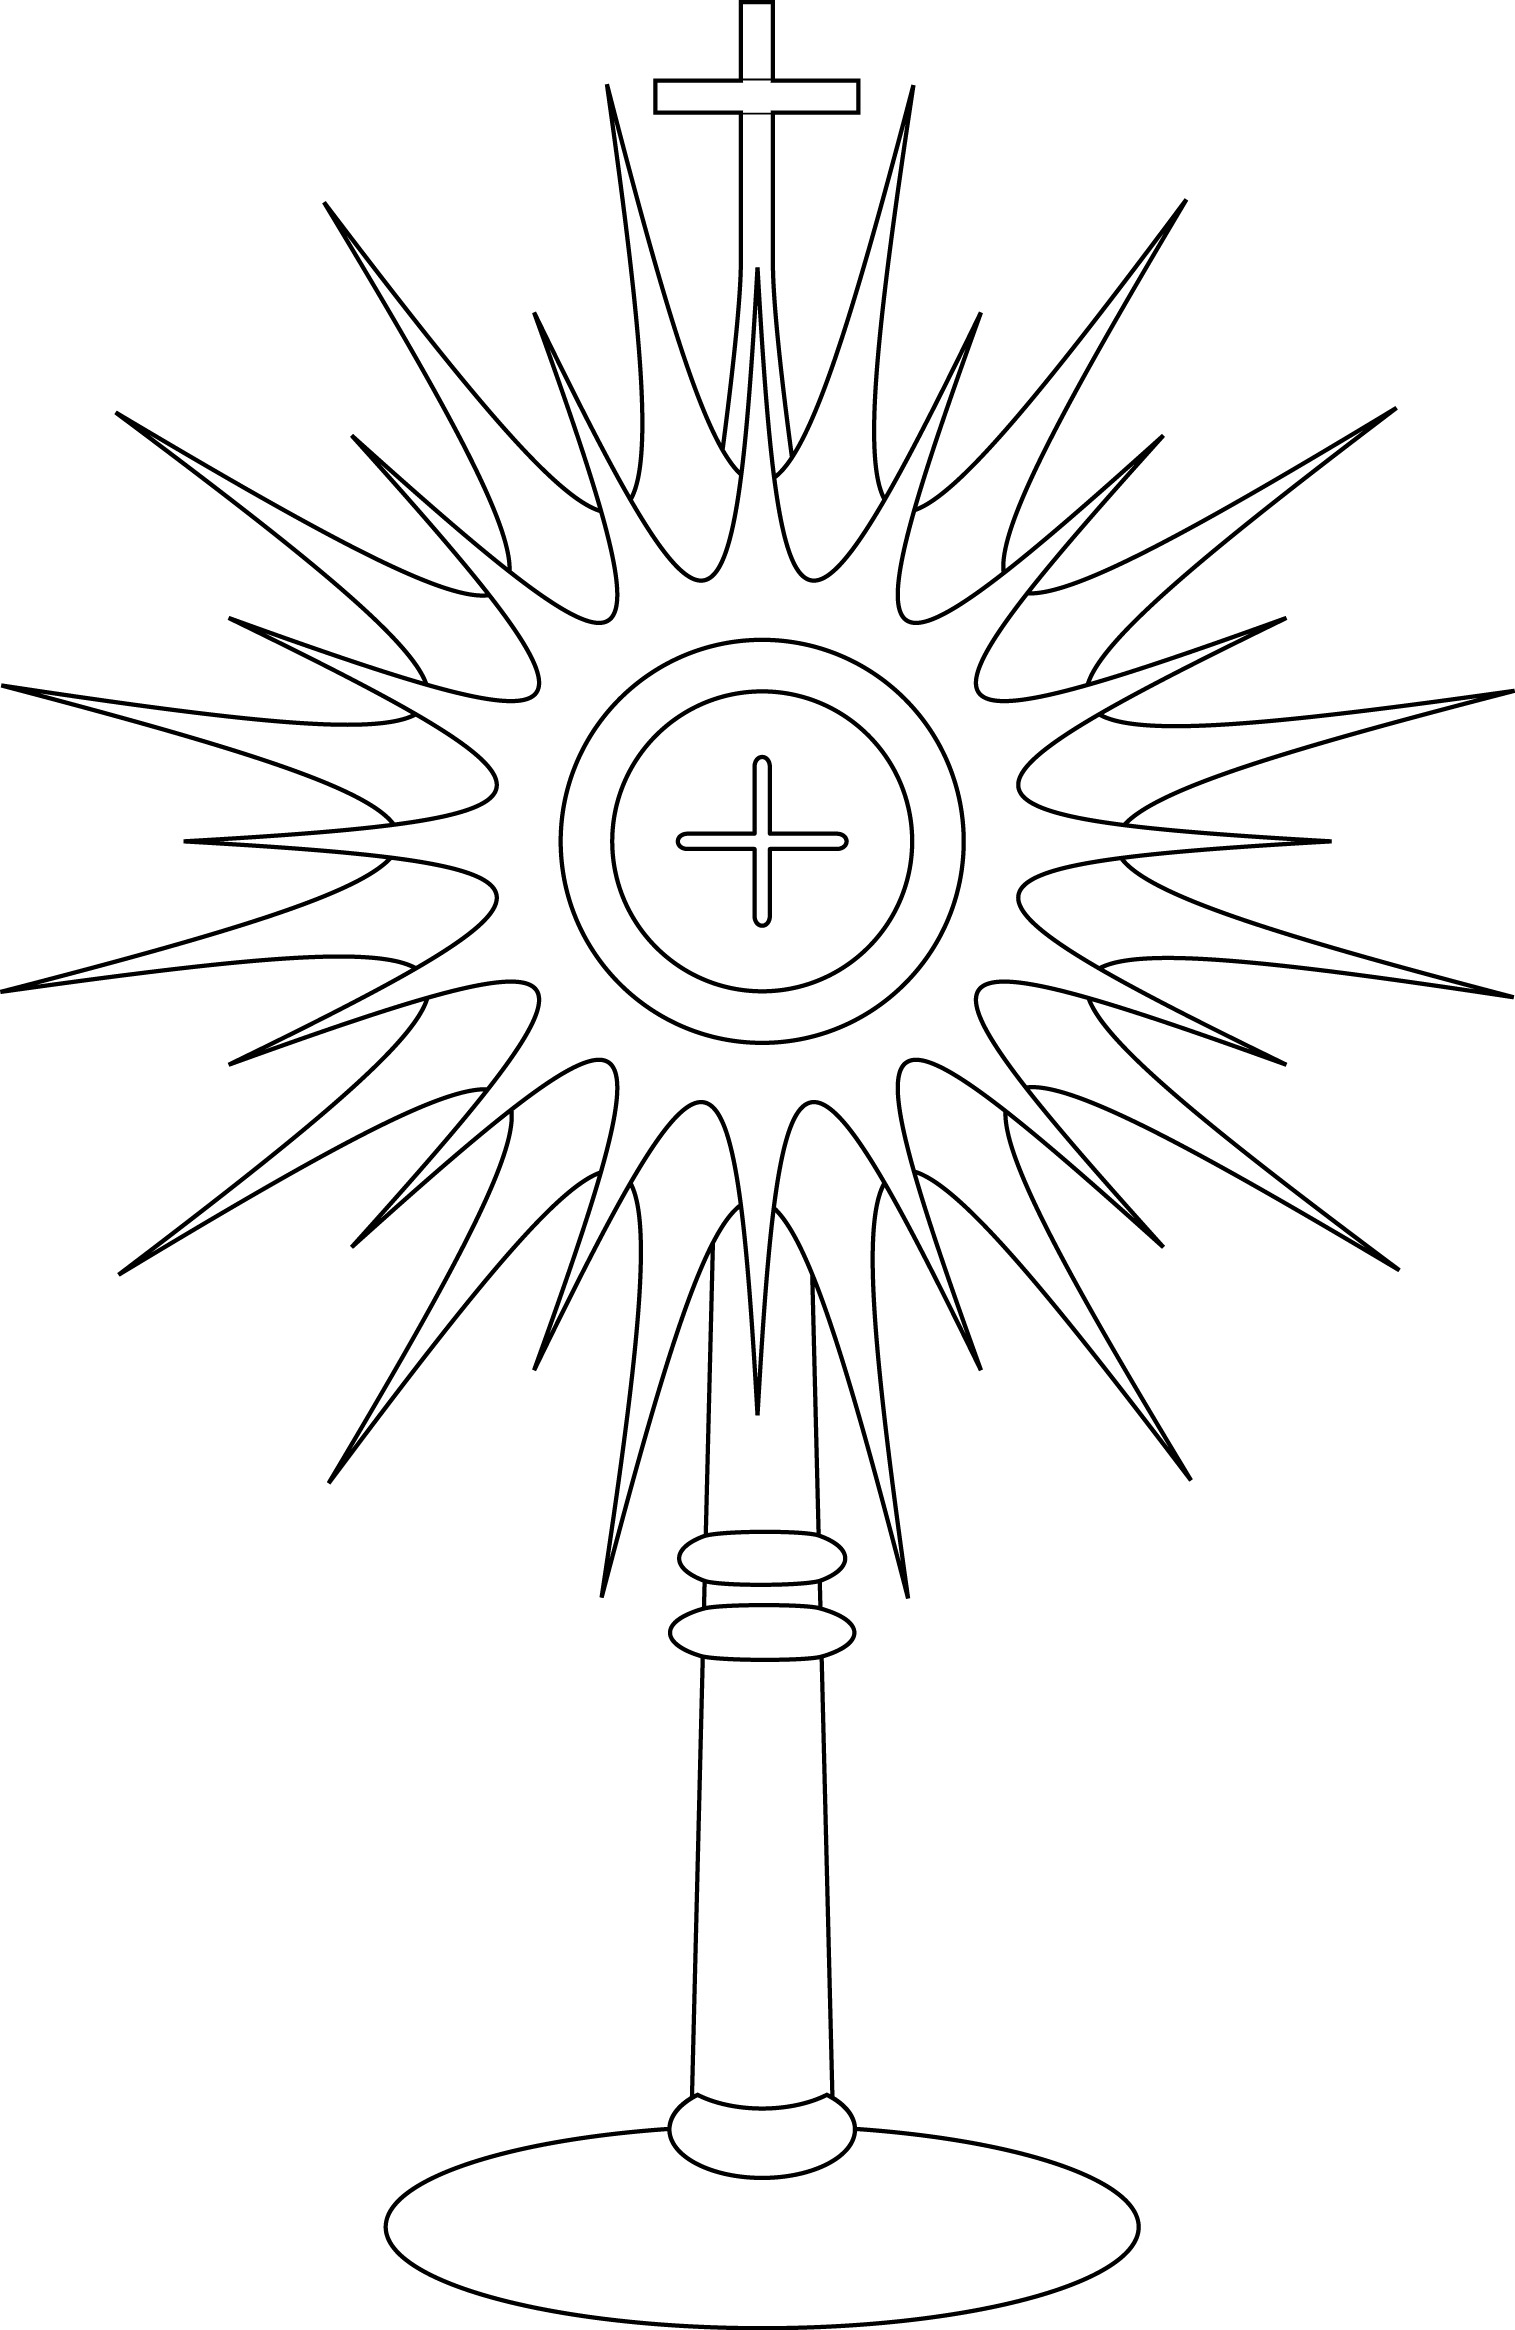 monstrance coloring page.